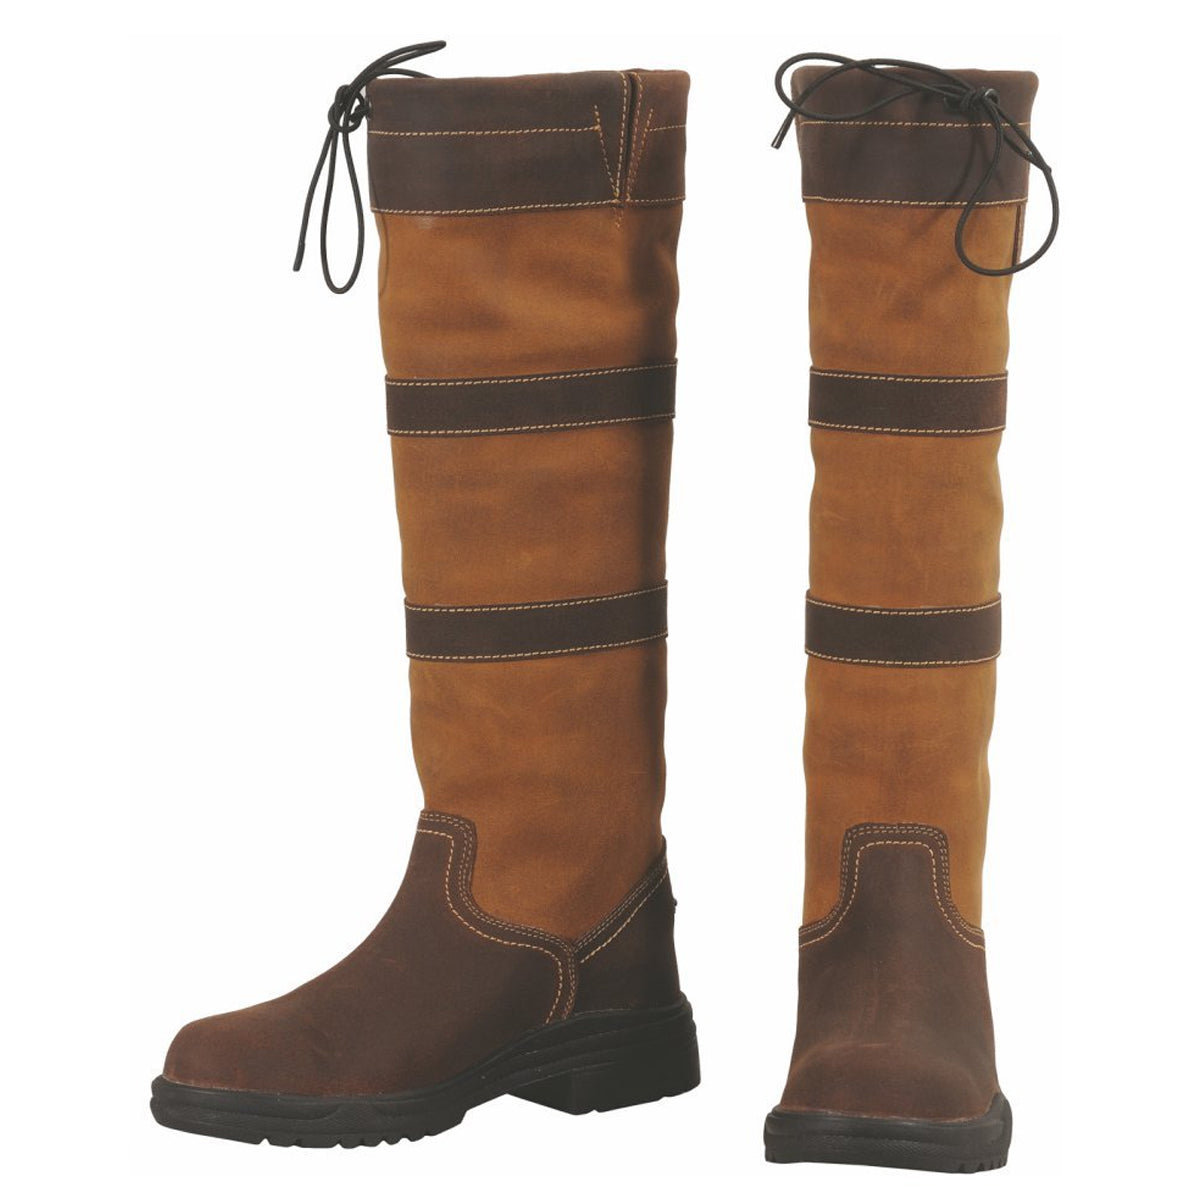 TuffRider Child's Lexington Waterproof Tall Boots